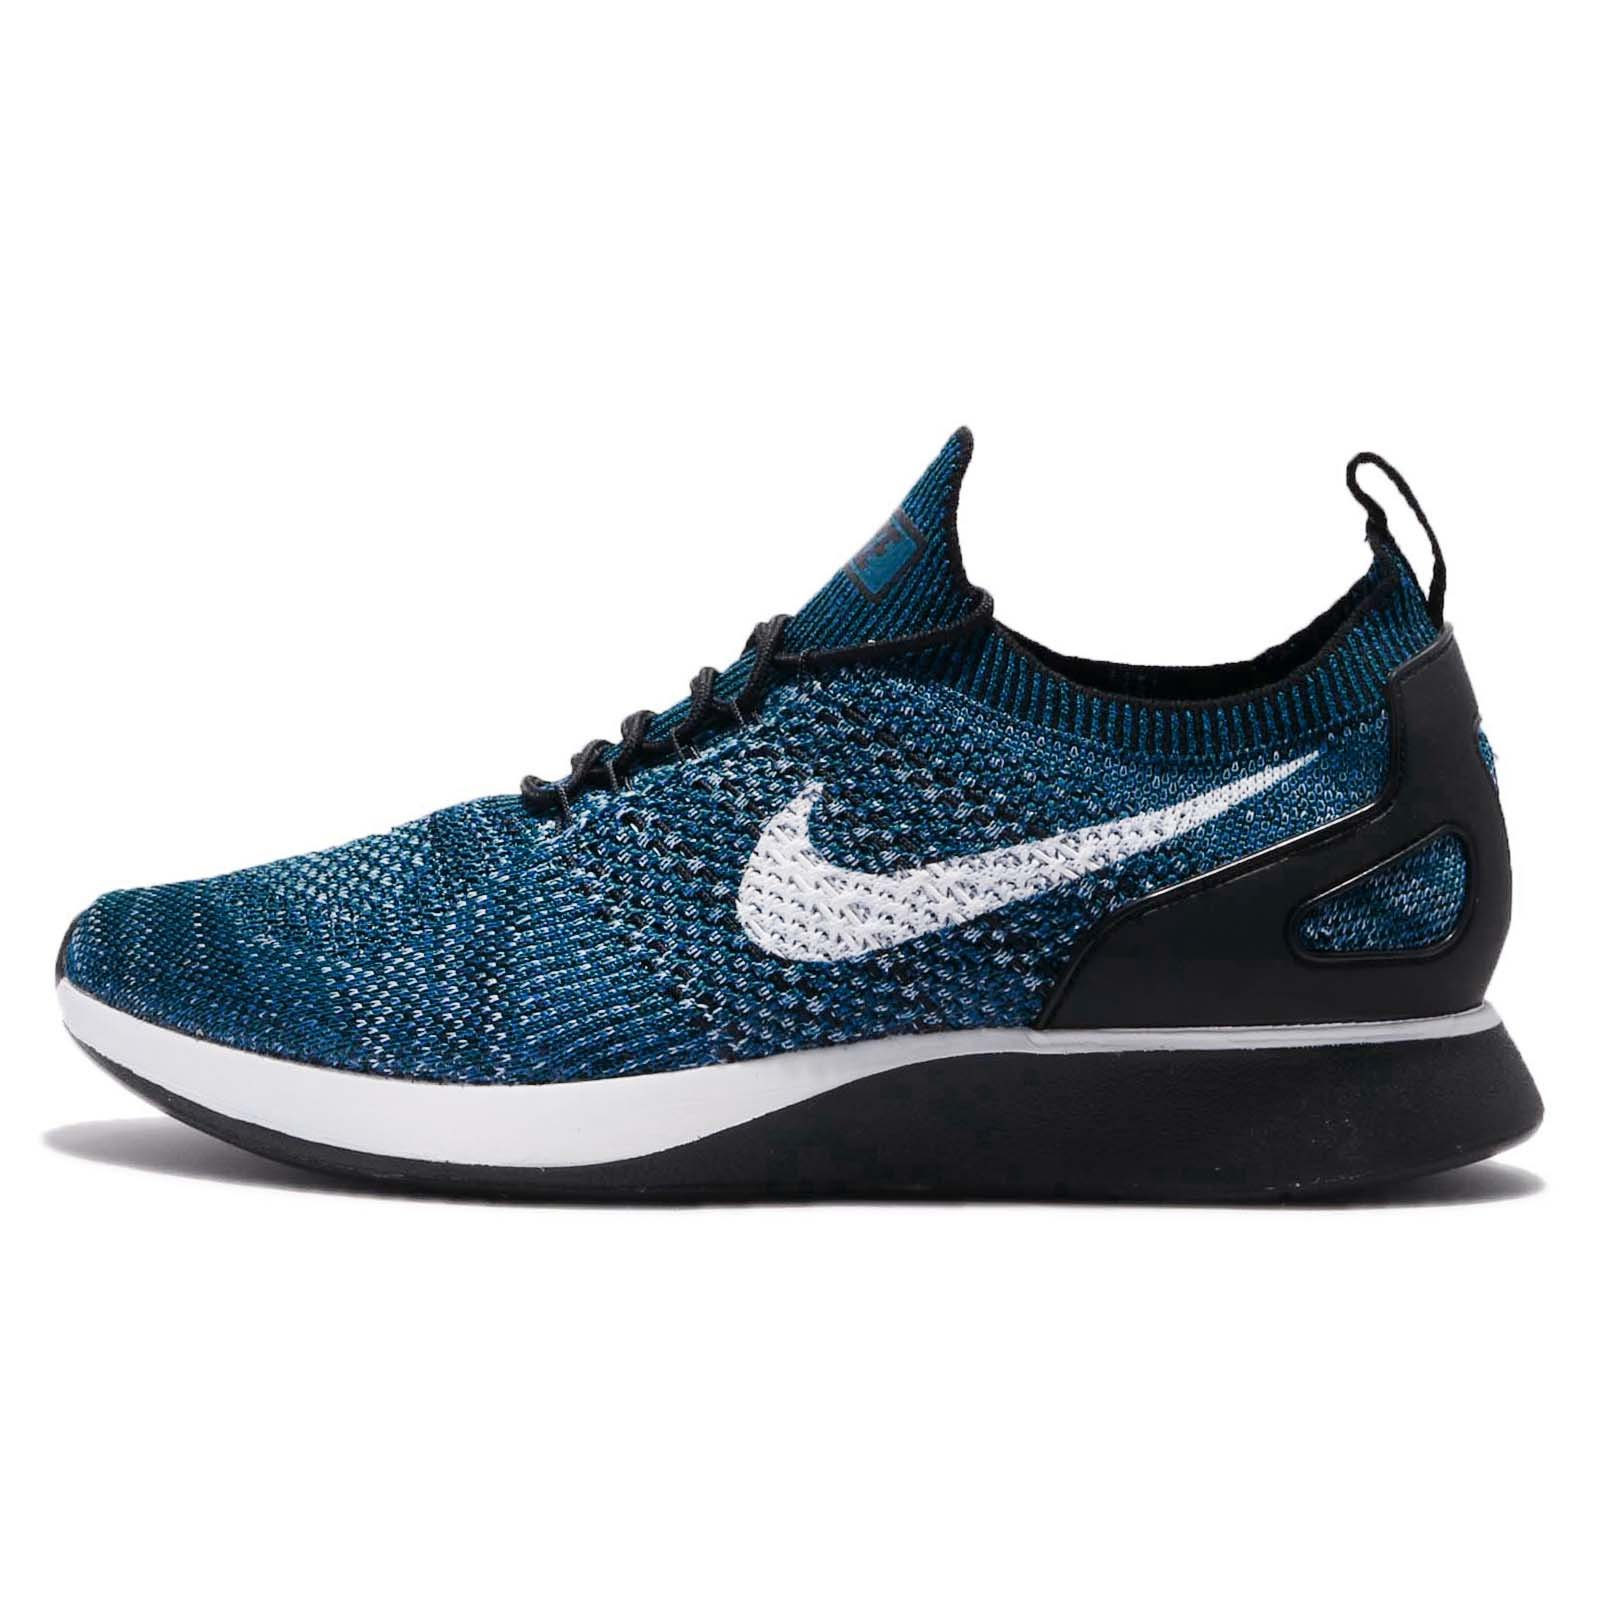 e7b3e3ecca4e Galleon - Nike Air Zoom Mariah Flyknit Racer Men s Sneakers 918264 300 Green  Abyss (Blue)   Black Cirrus Blue (9)